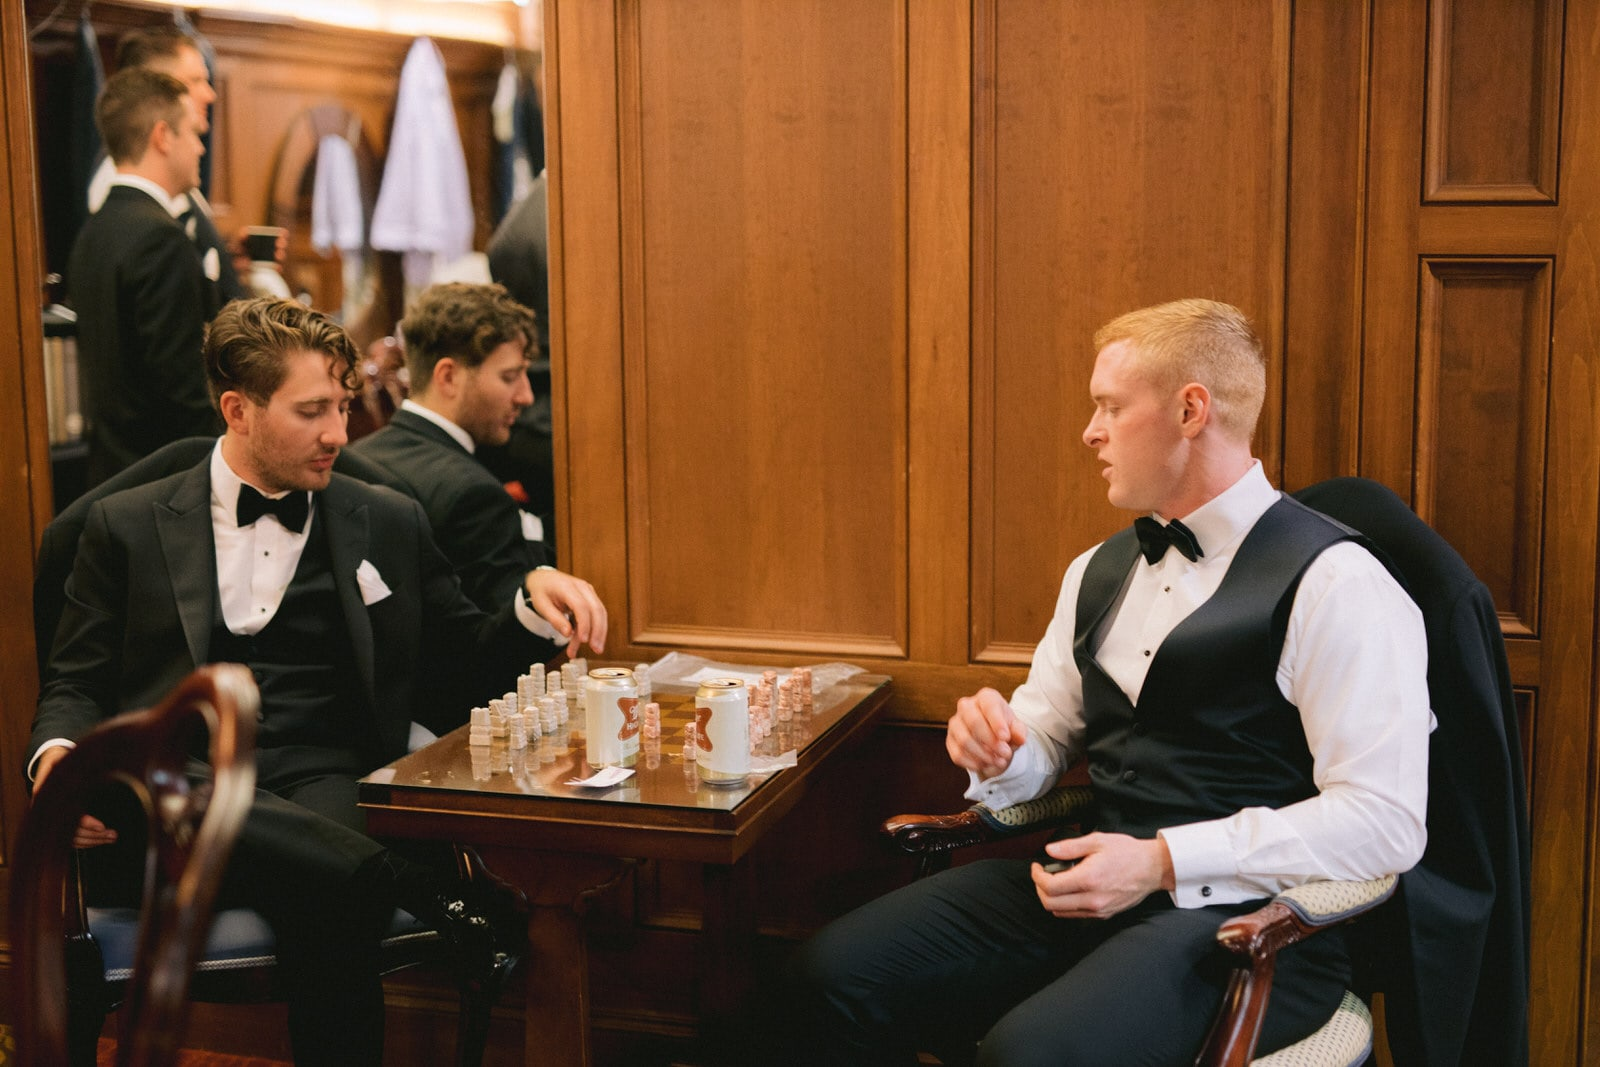 Grooms ment getting ready at Pillar & Post